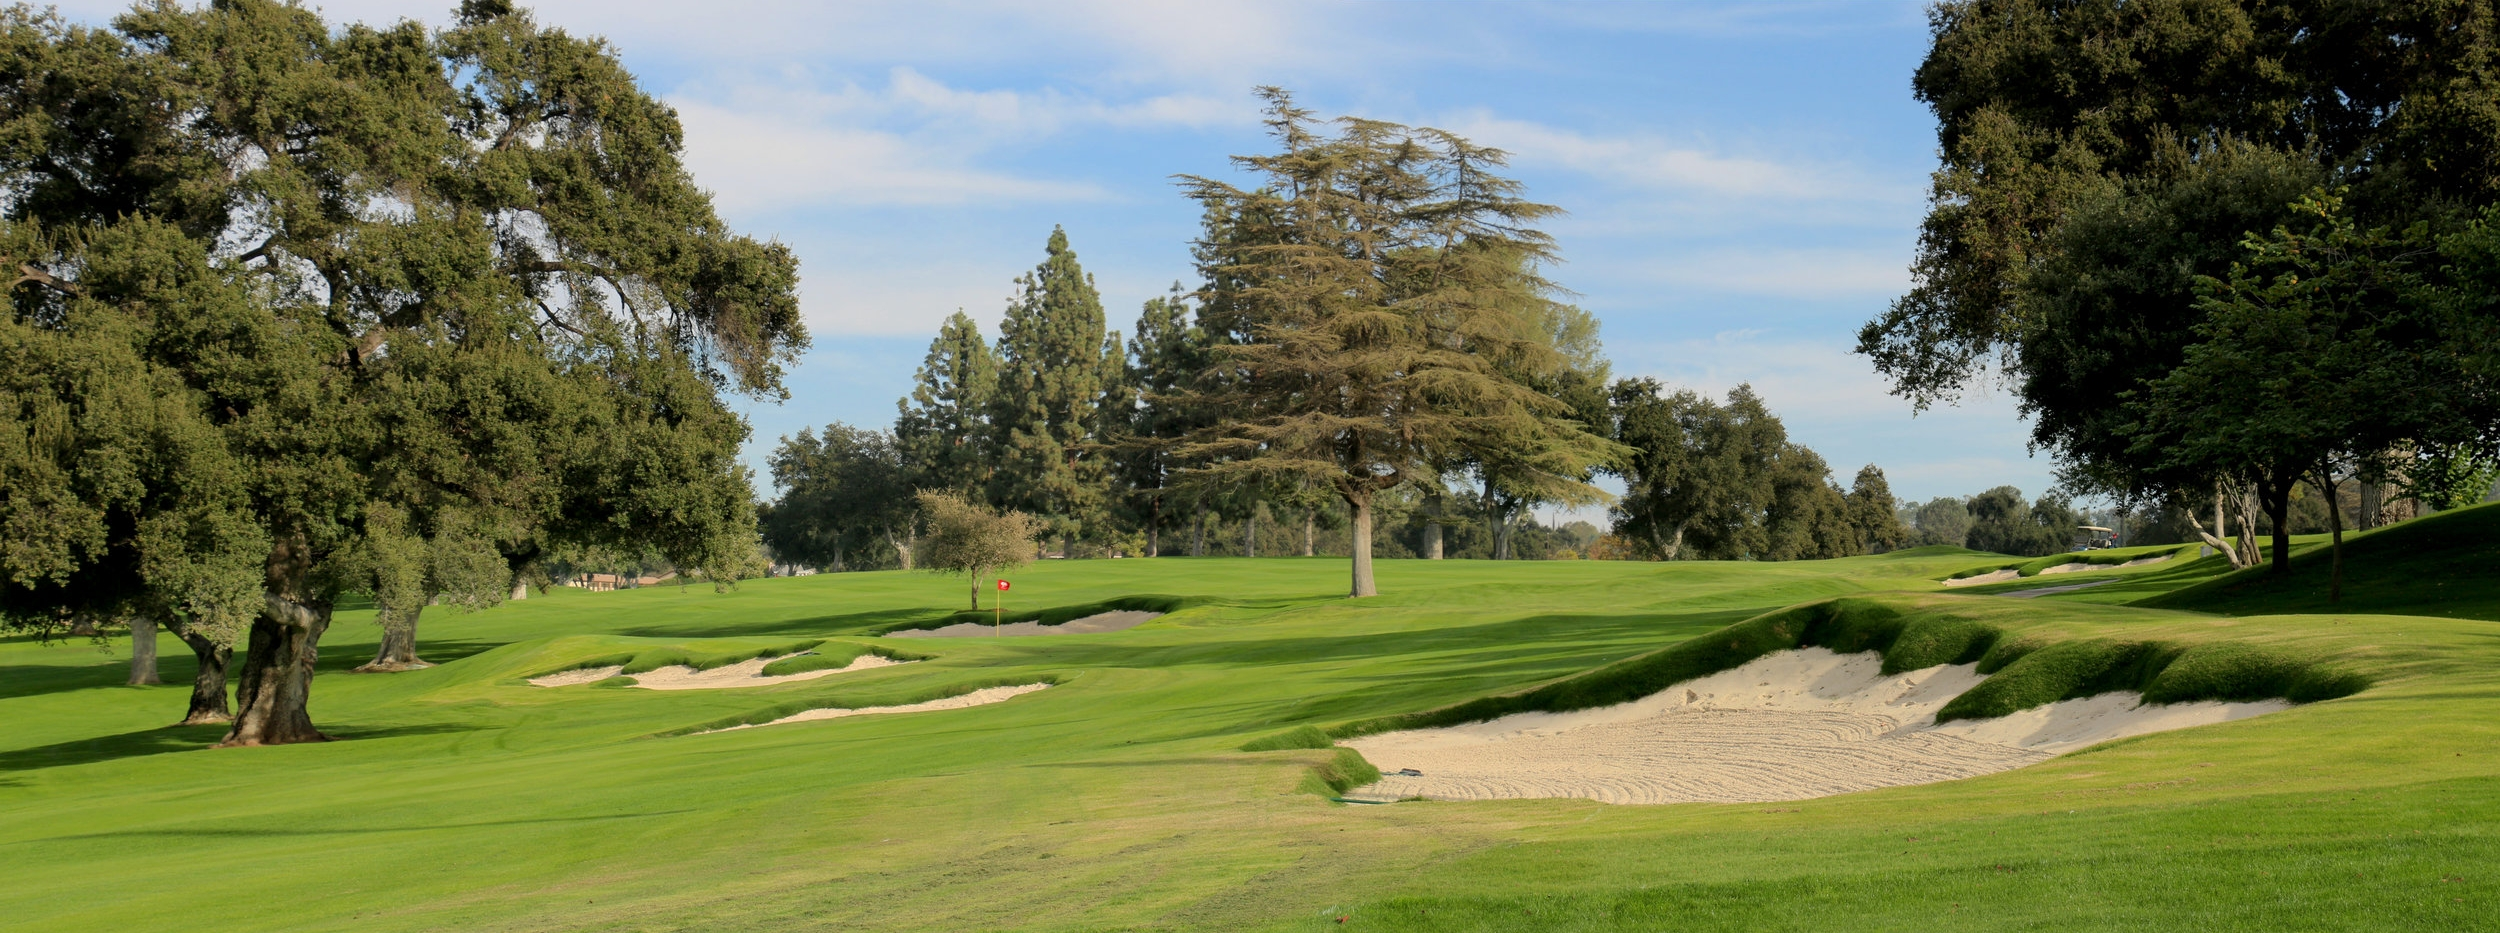 The first hole at Redlands as viewed from the best angle into the green. Image courtesy of Todd Eckenrode, Origins Golf Design.